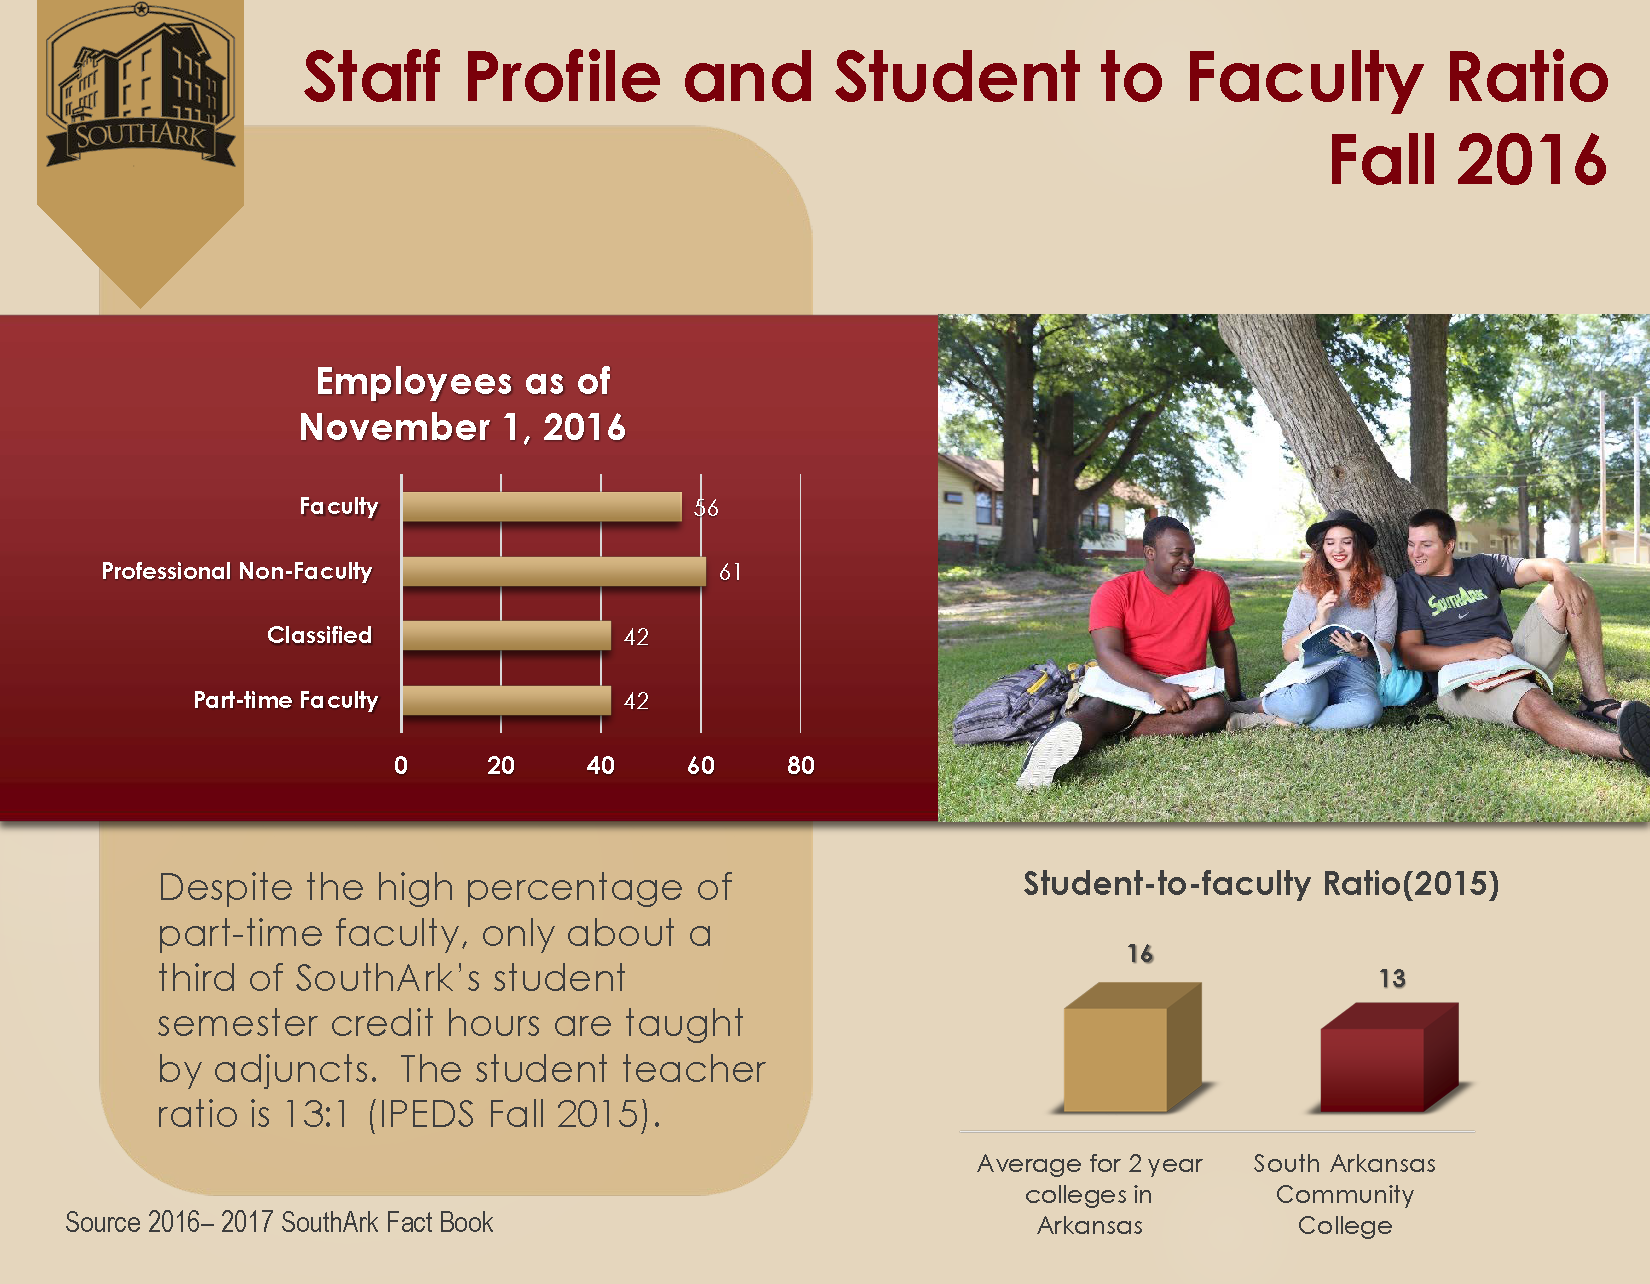 Staff Profile and Student to Faculty Ratio